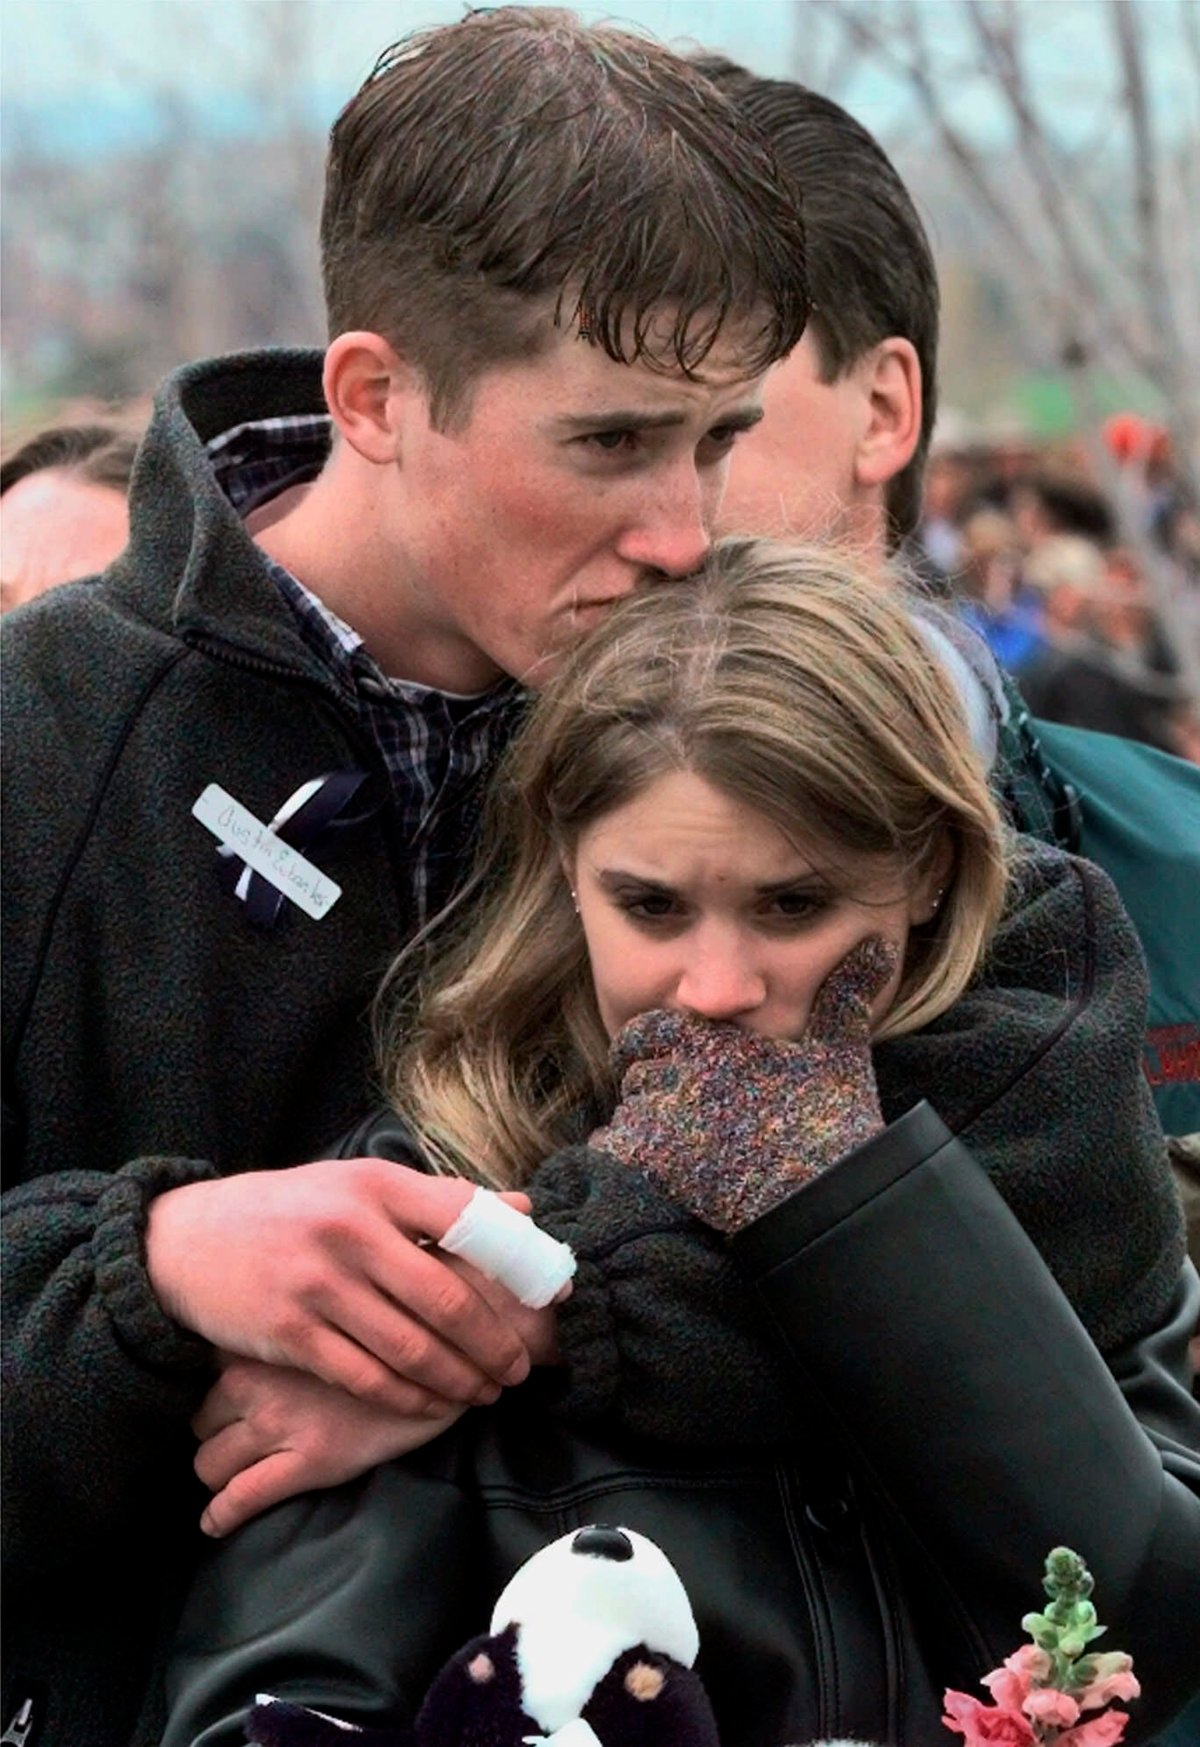 FILE - In this April 25, 1999 file photo, shooting victim Austin Eubanks hugs his girlfriend during a community wide memorial service in Littleton, Colo., for the victims of the shooting rampage at Columbine High School the previous week.